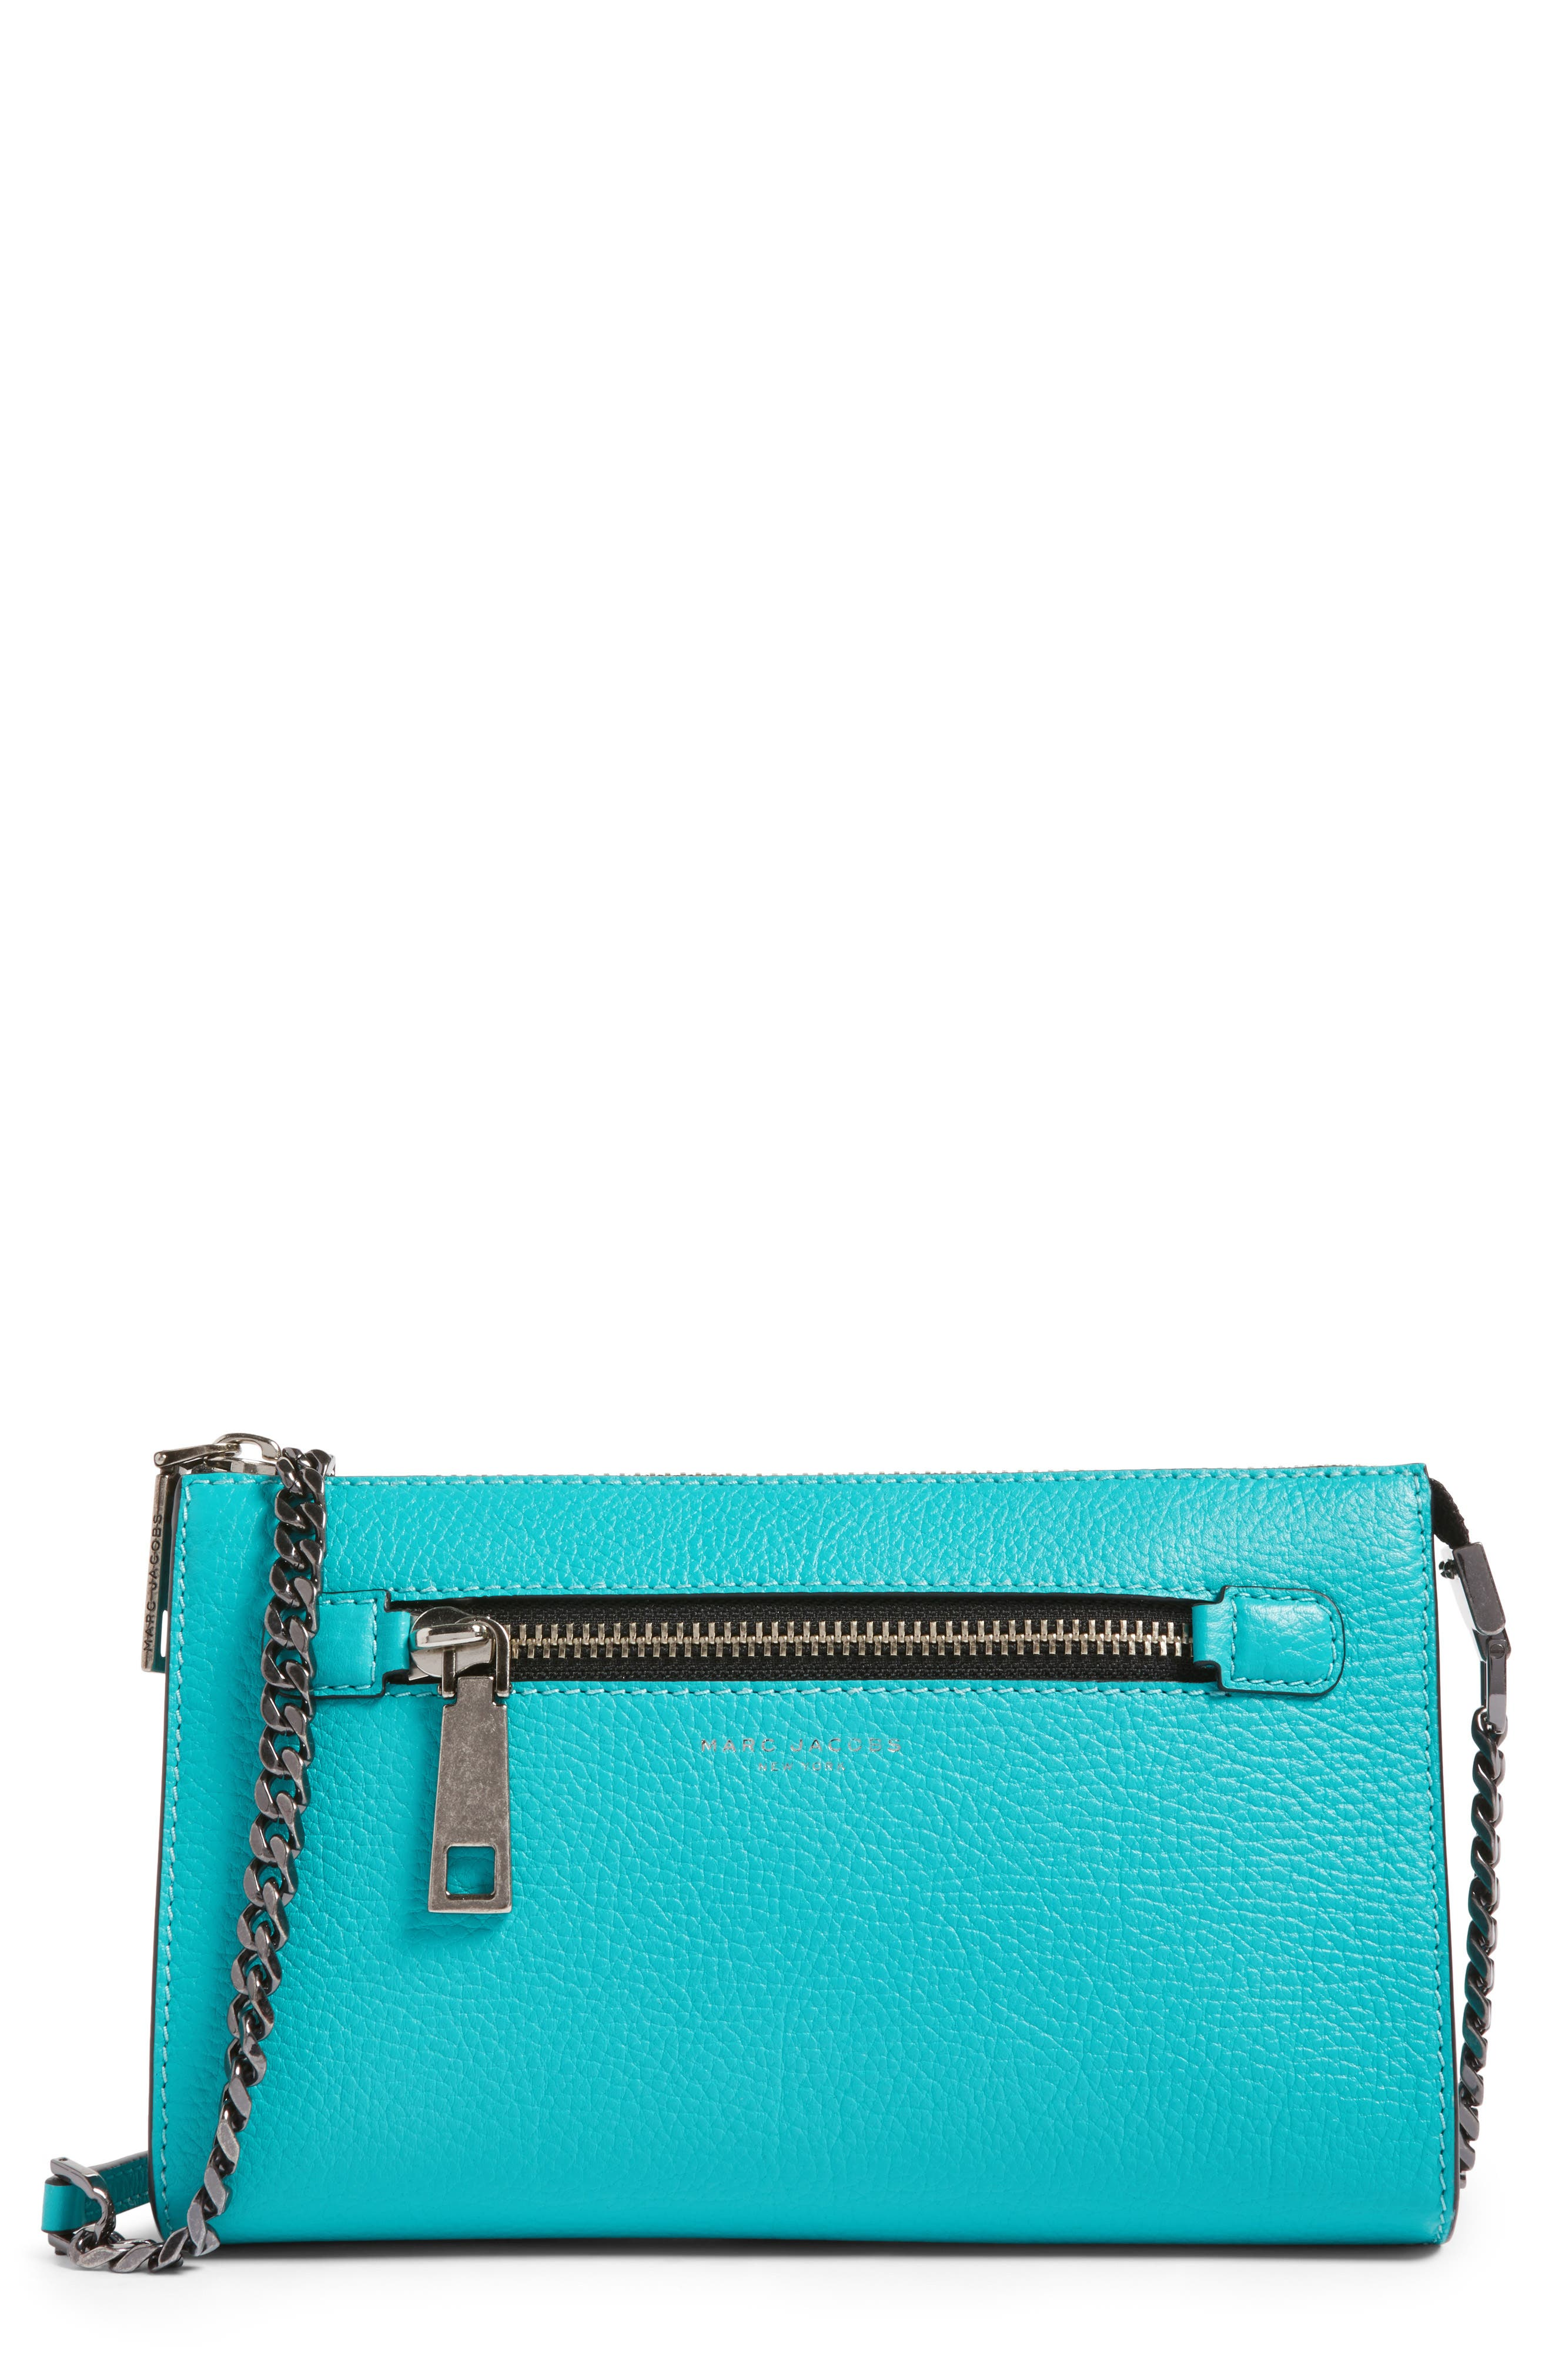 MARC JACOBS Small Gotham Leather Crossbody Wallet (Nordstrom Exclusive)